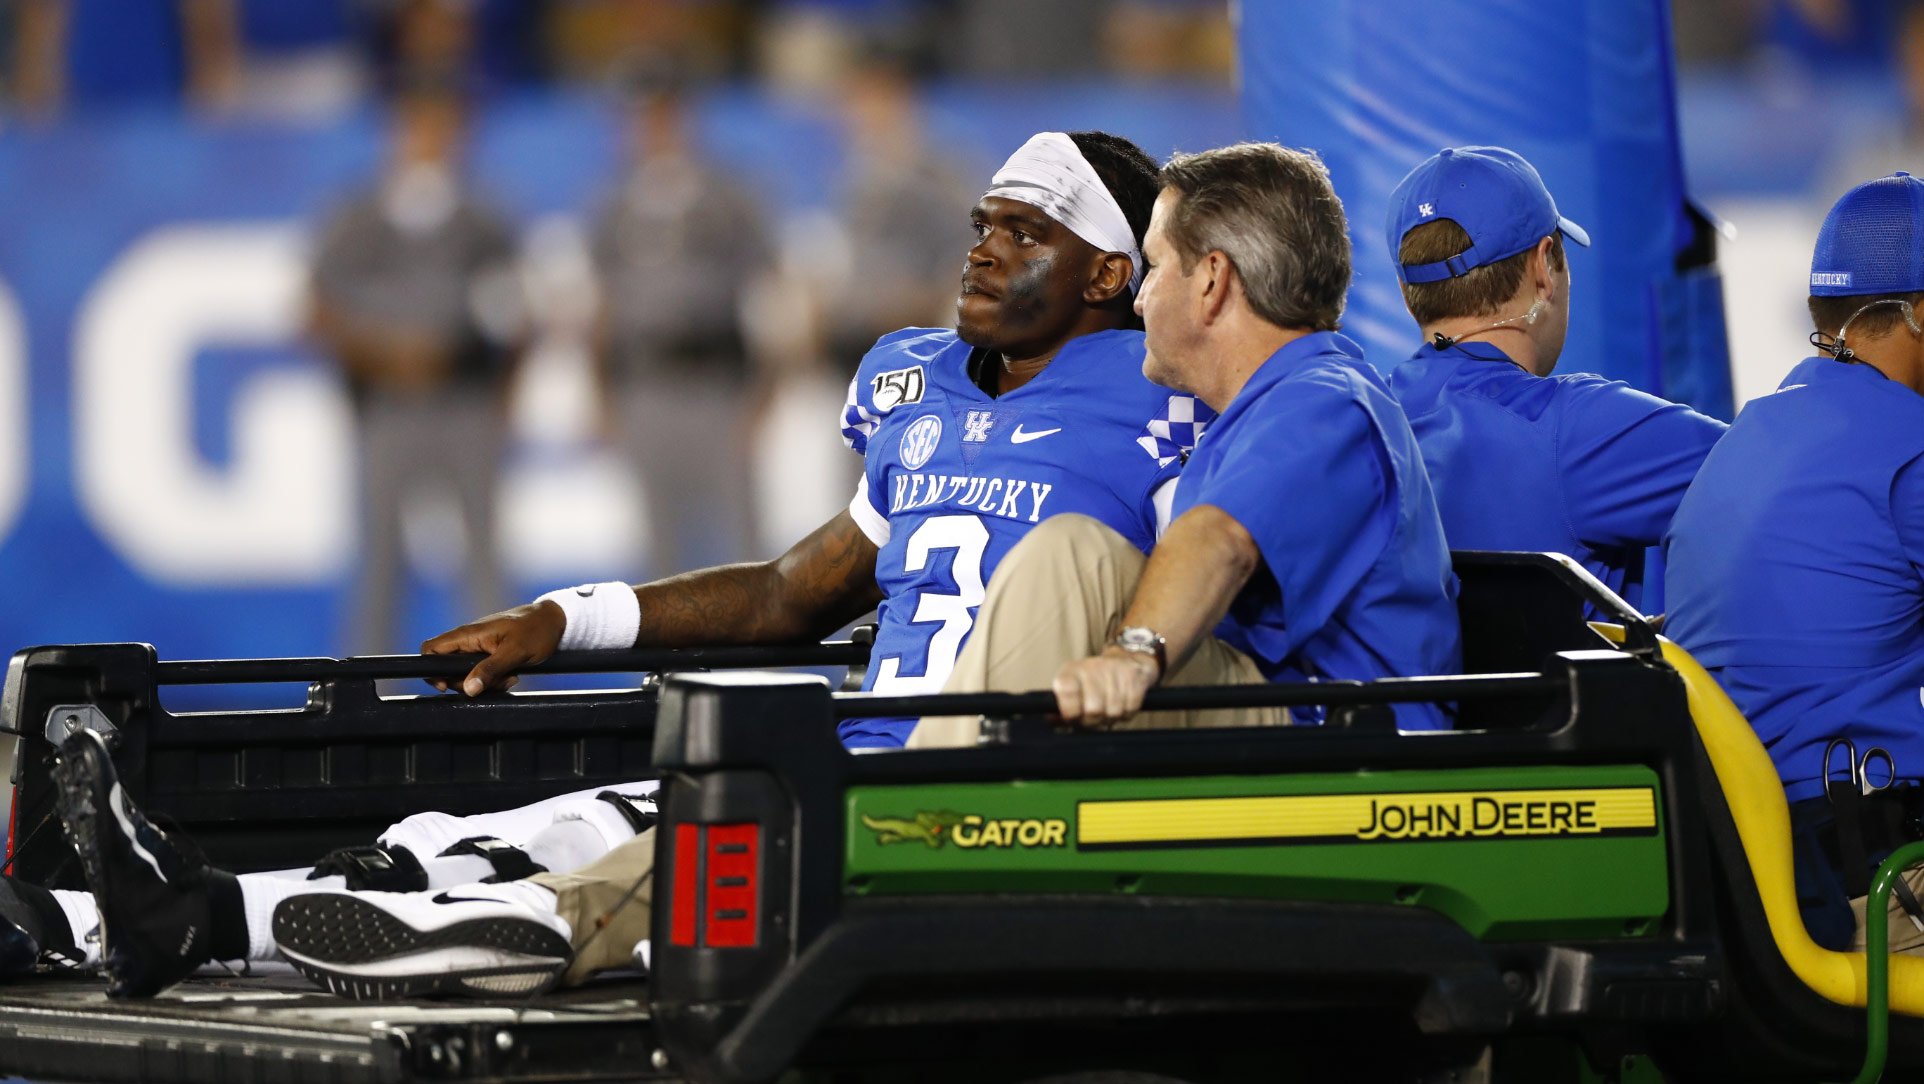 Terry rides in the back of a golf cart off of the field after sustaining his injury. He is accompanied by a trainer, his facial expression is grim.